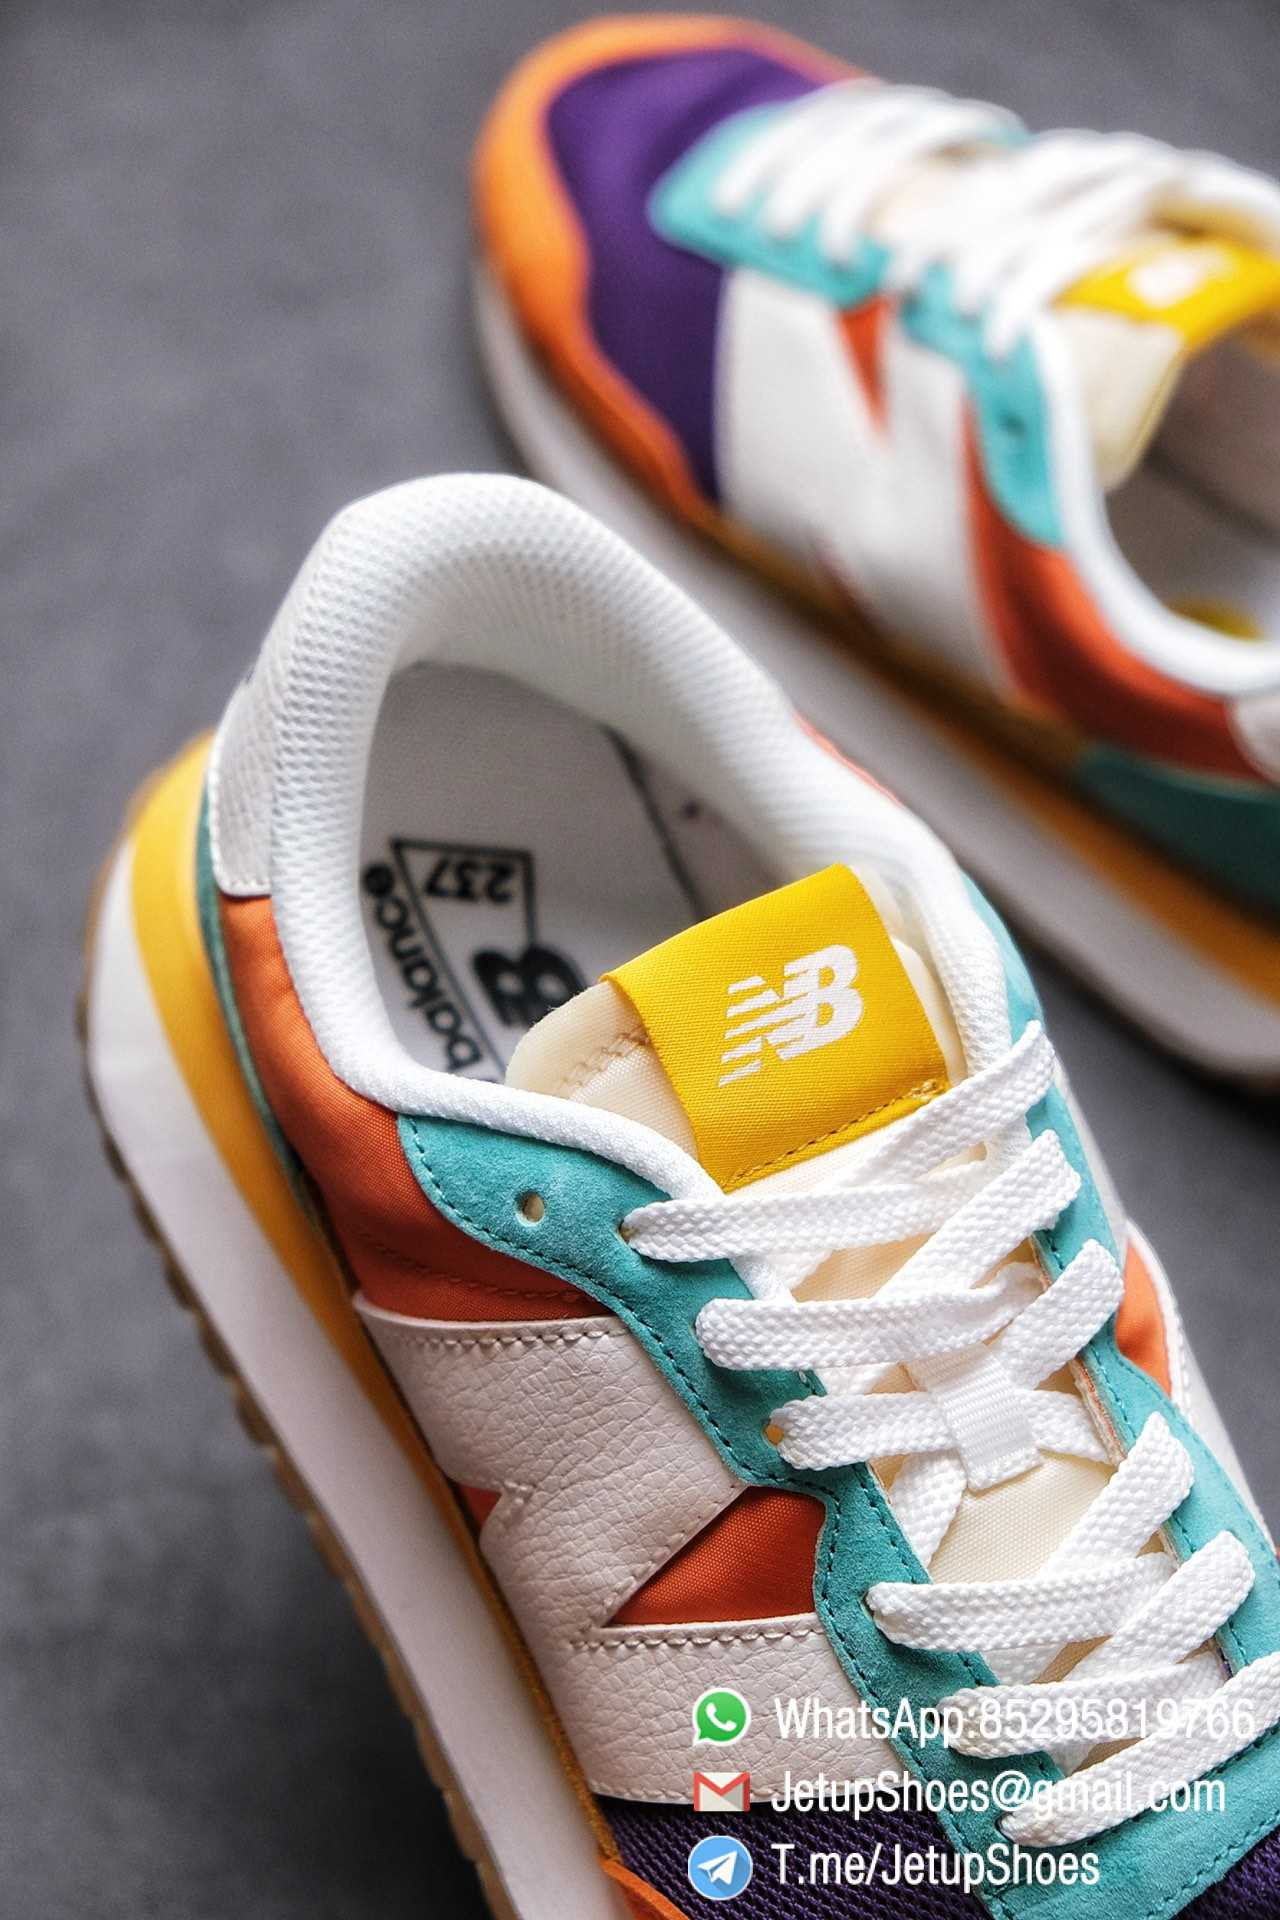 Best Replica New Balance 237 Yellow Blue Orange Suede Purple Mesh Stitching SKU MS237LB2 High Quality Fake Multi Color Running Shoes 07